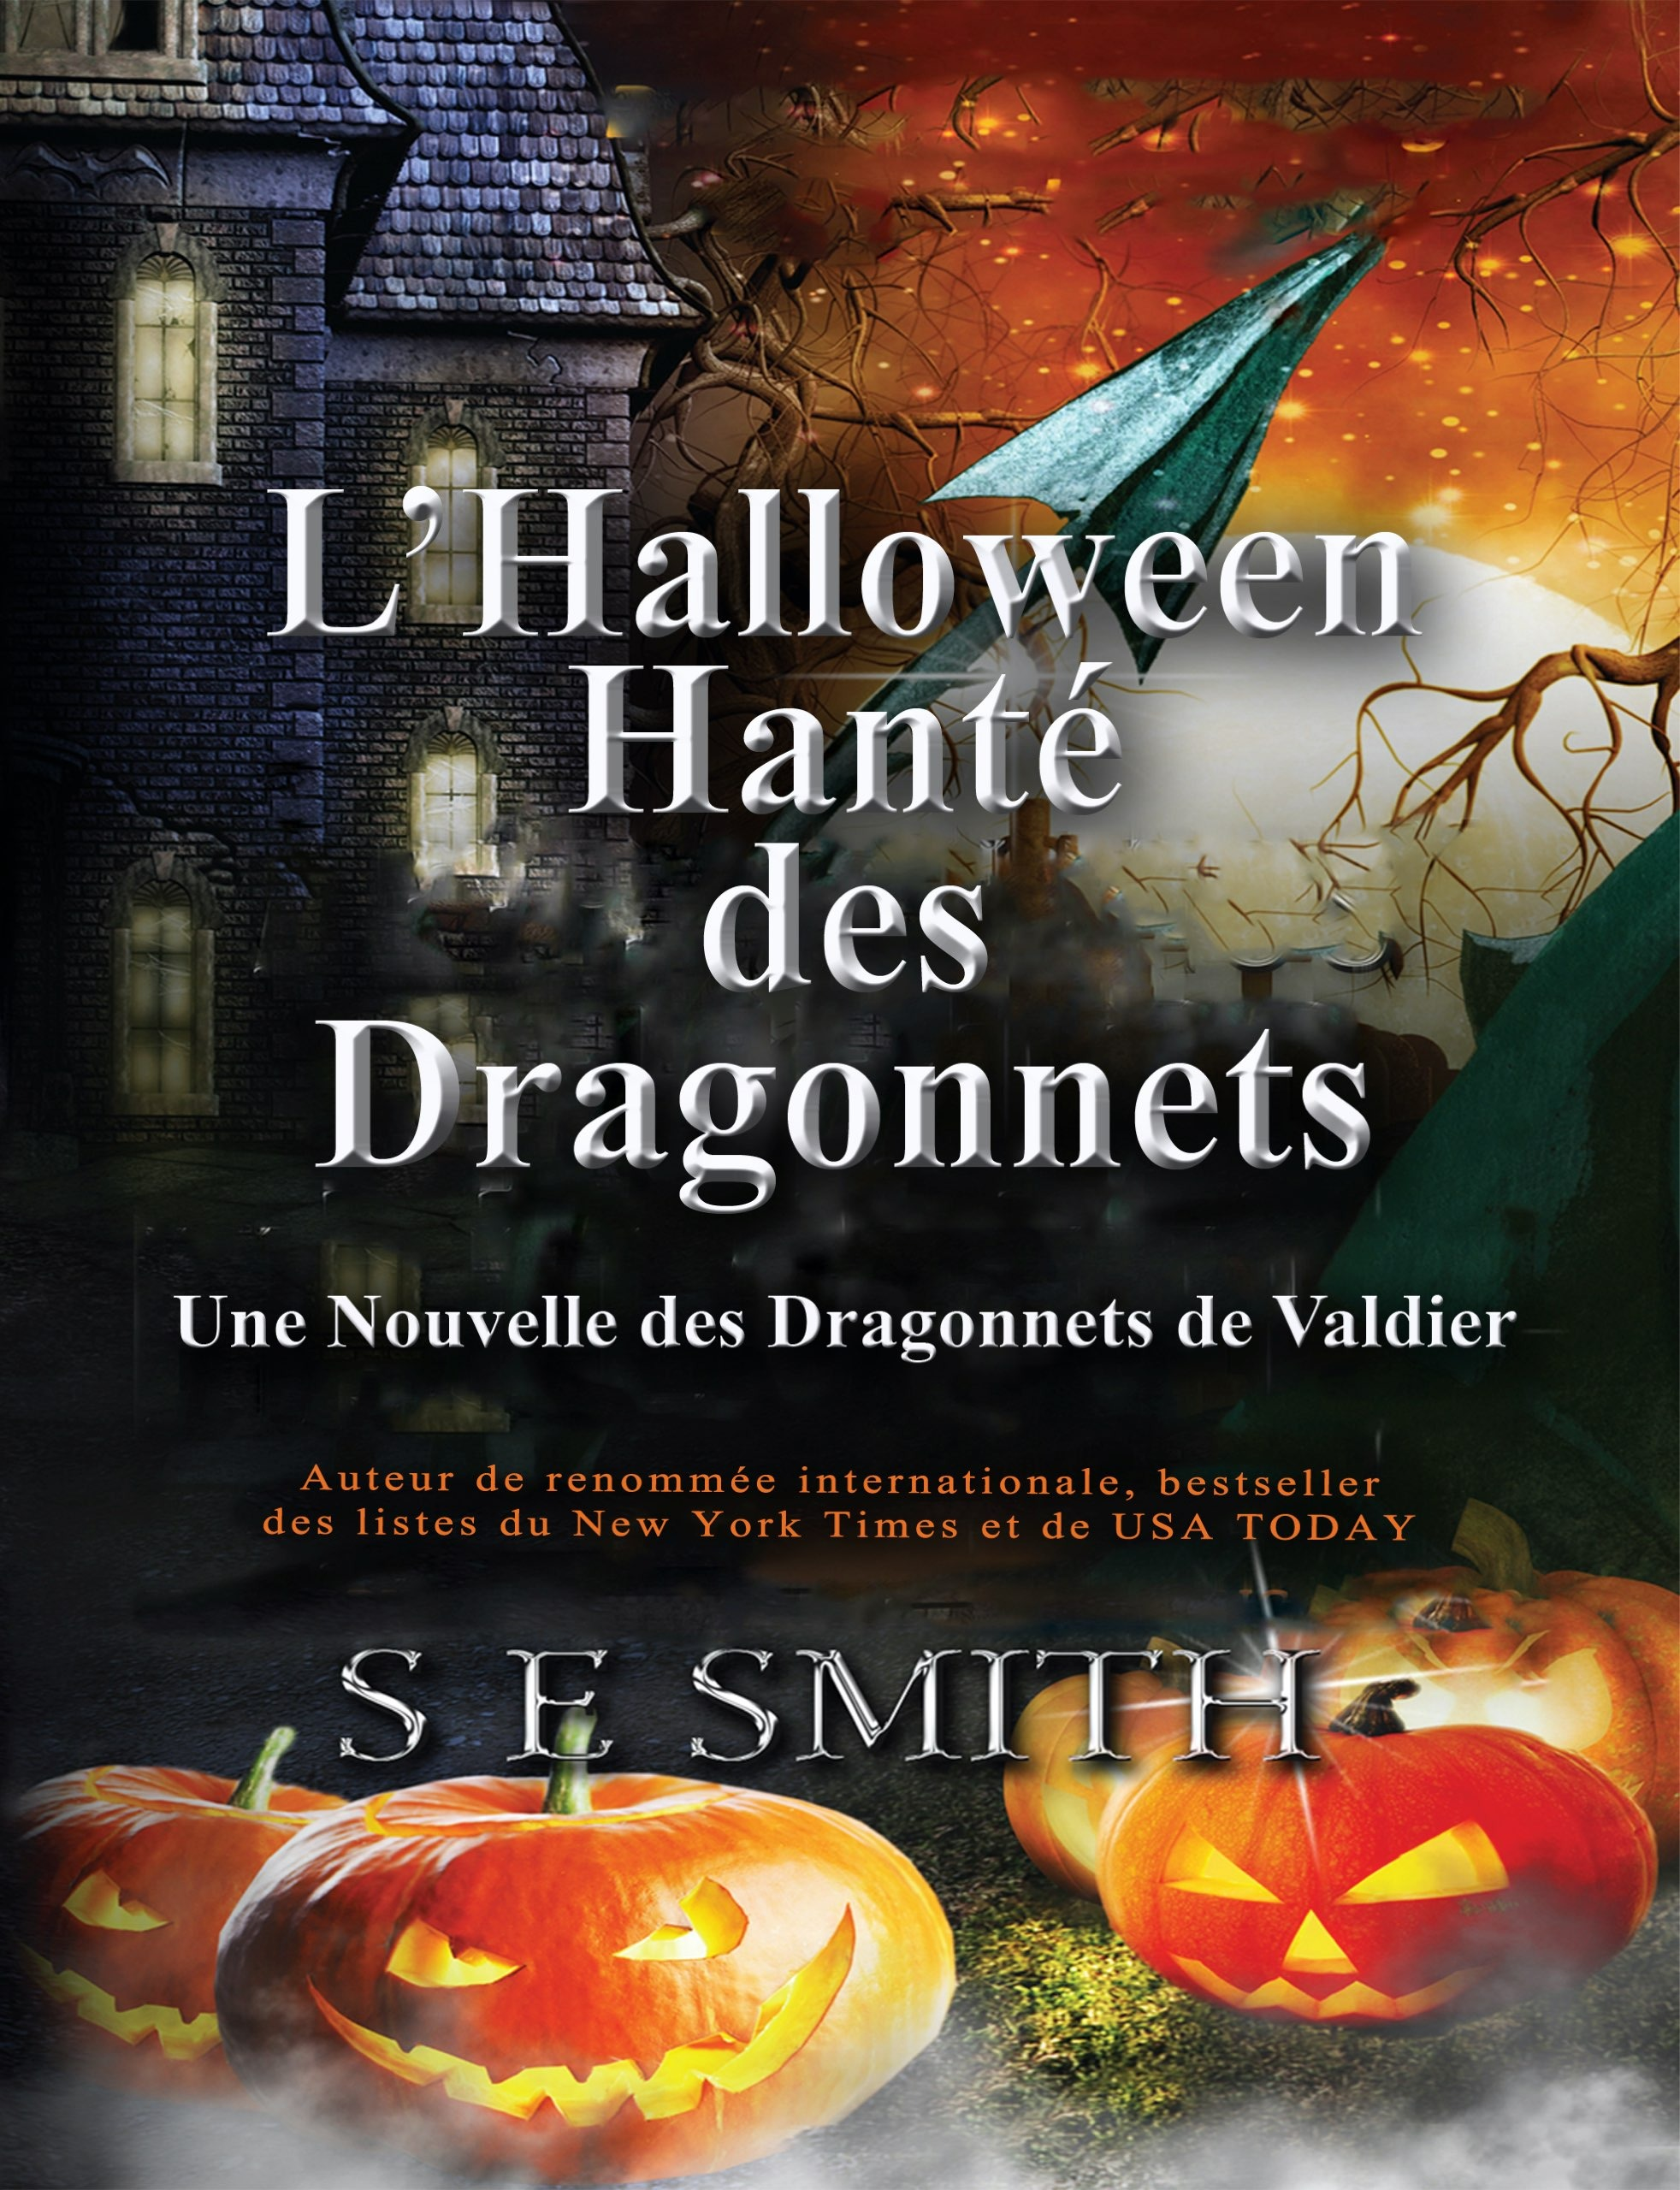 Une Nouvelle des Dragonnets de Valdier: Les Dragonnets de Valdier (ebook: Kindle et epub)